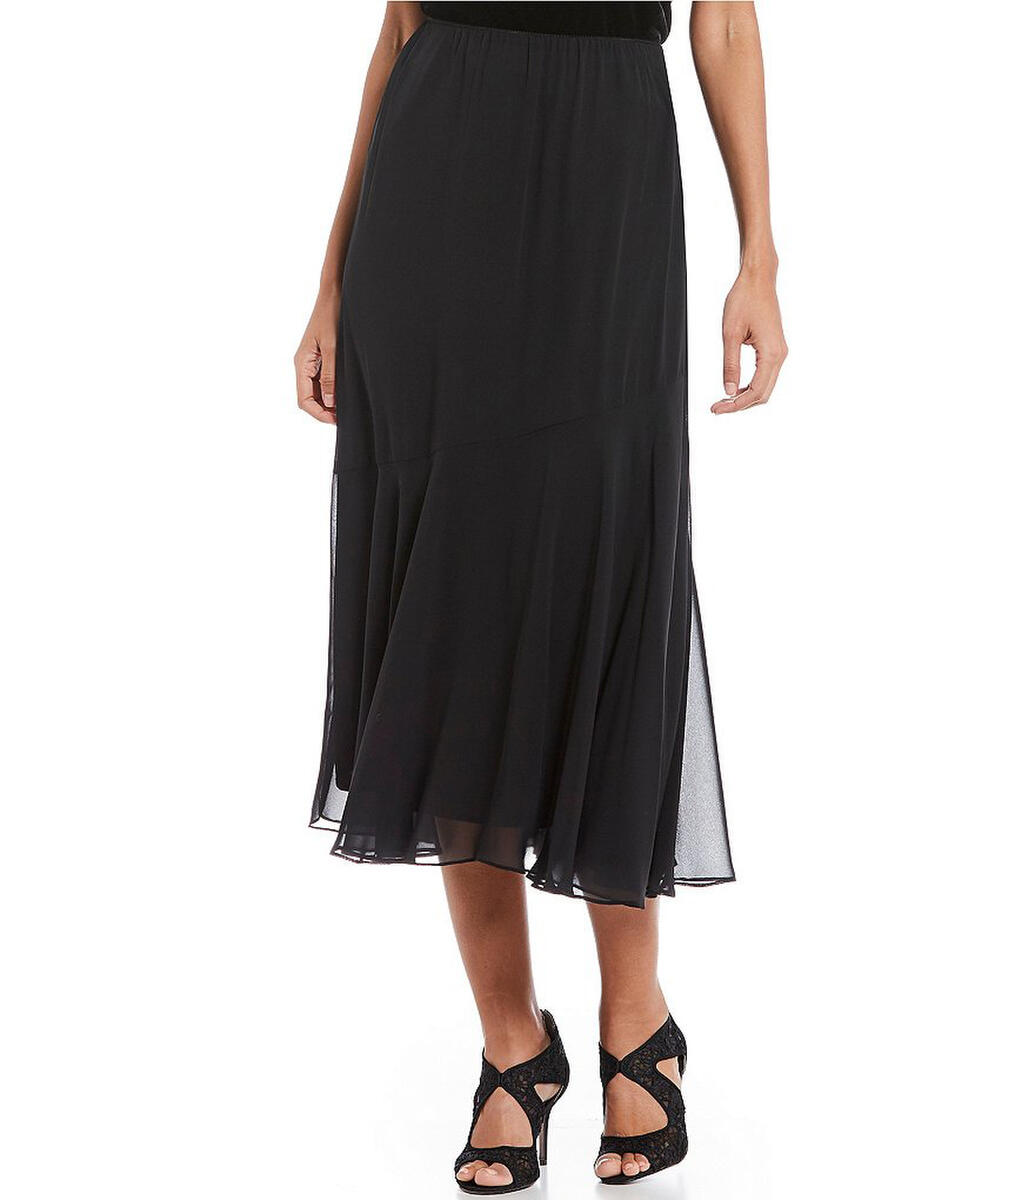 ALEX APPAREL GROUP INC - Long Chiffon Skirt